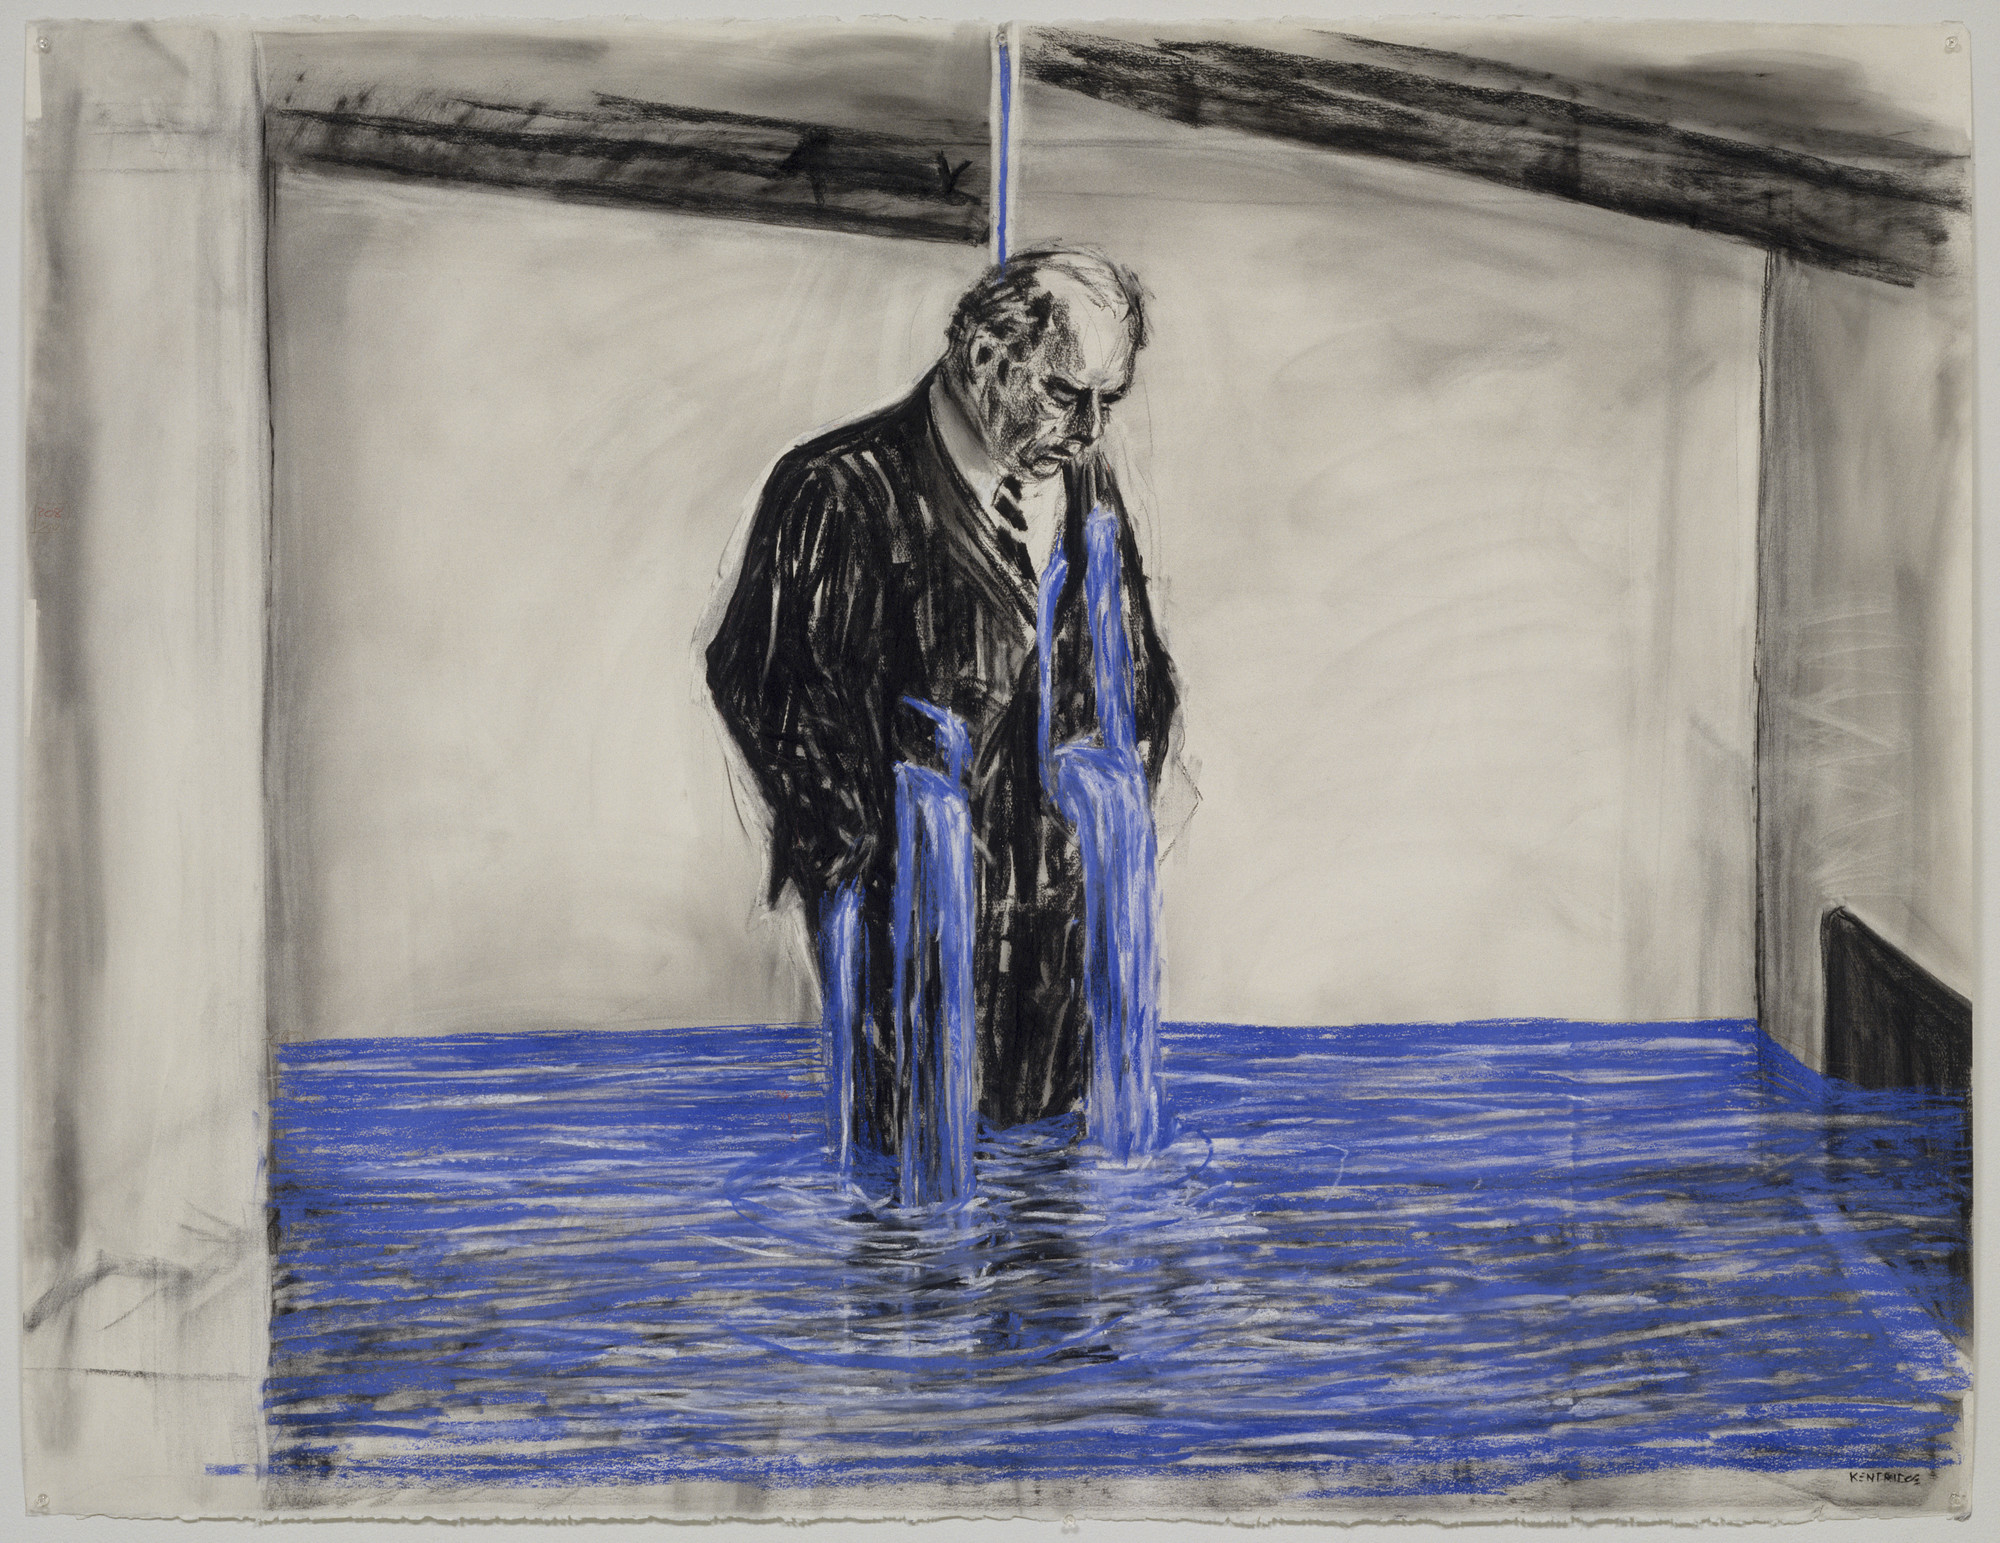 William Kentridge. Drawing from STEREOSCOPE. 1998–99. Charcoal and pastel on paper, 47 1/4 × 63″ (120 × 160 cm). Gift of The Junior Associates of The Museum of Modern Art, with special contributions from Anonymous, Scott J. Lorinsky, Yasufumi Nakamura, and The Wider Foundation. © 2003 William Kentridge. Photo: Tom Griesel, The Museum of Modern Art